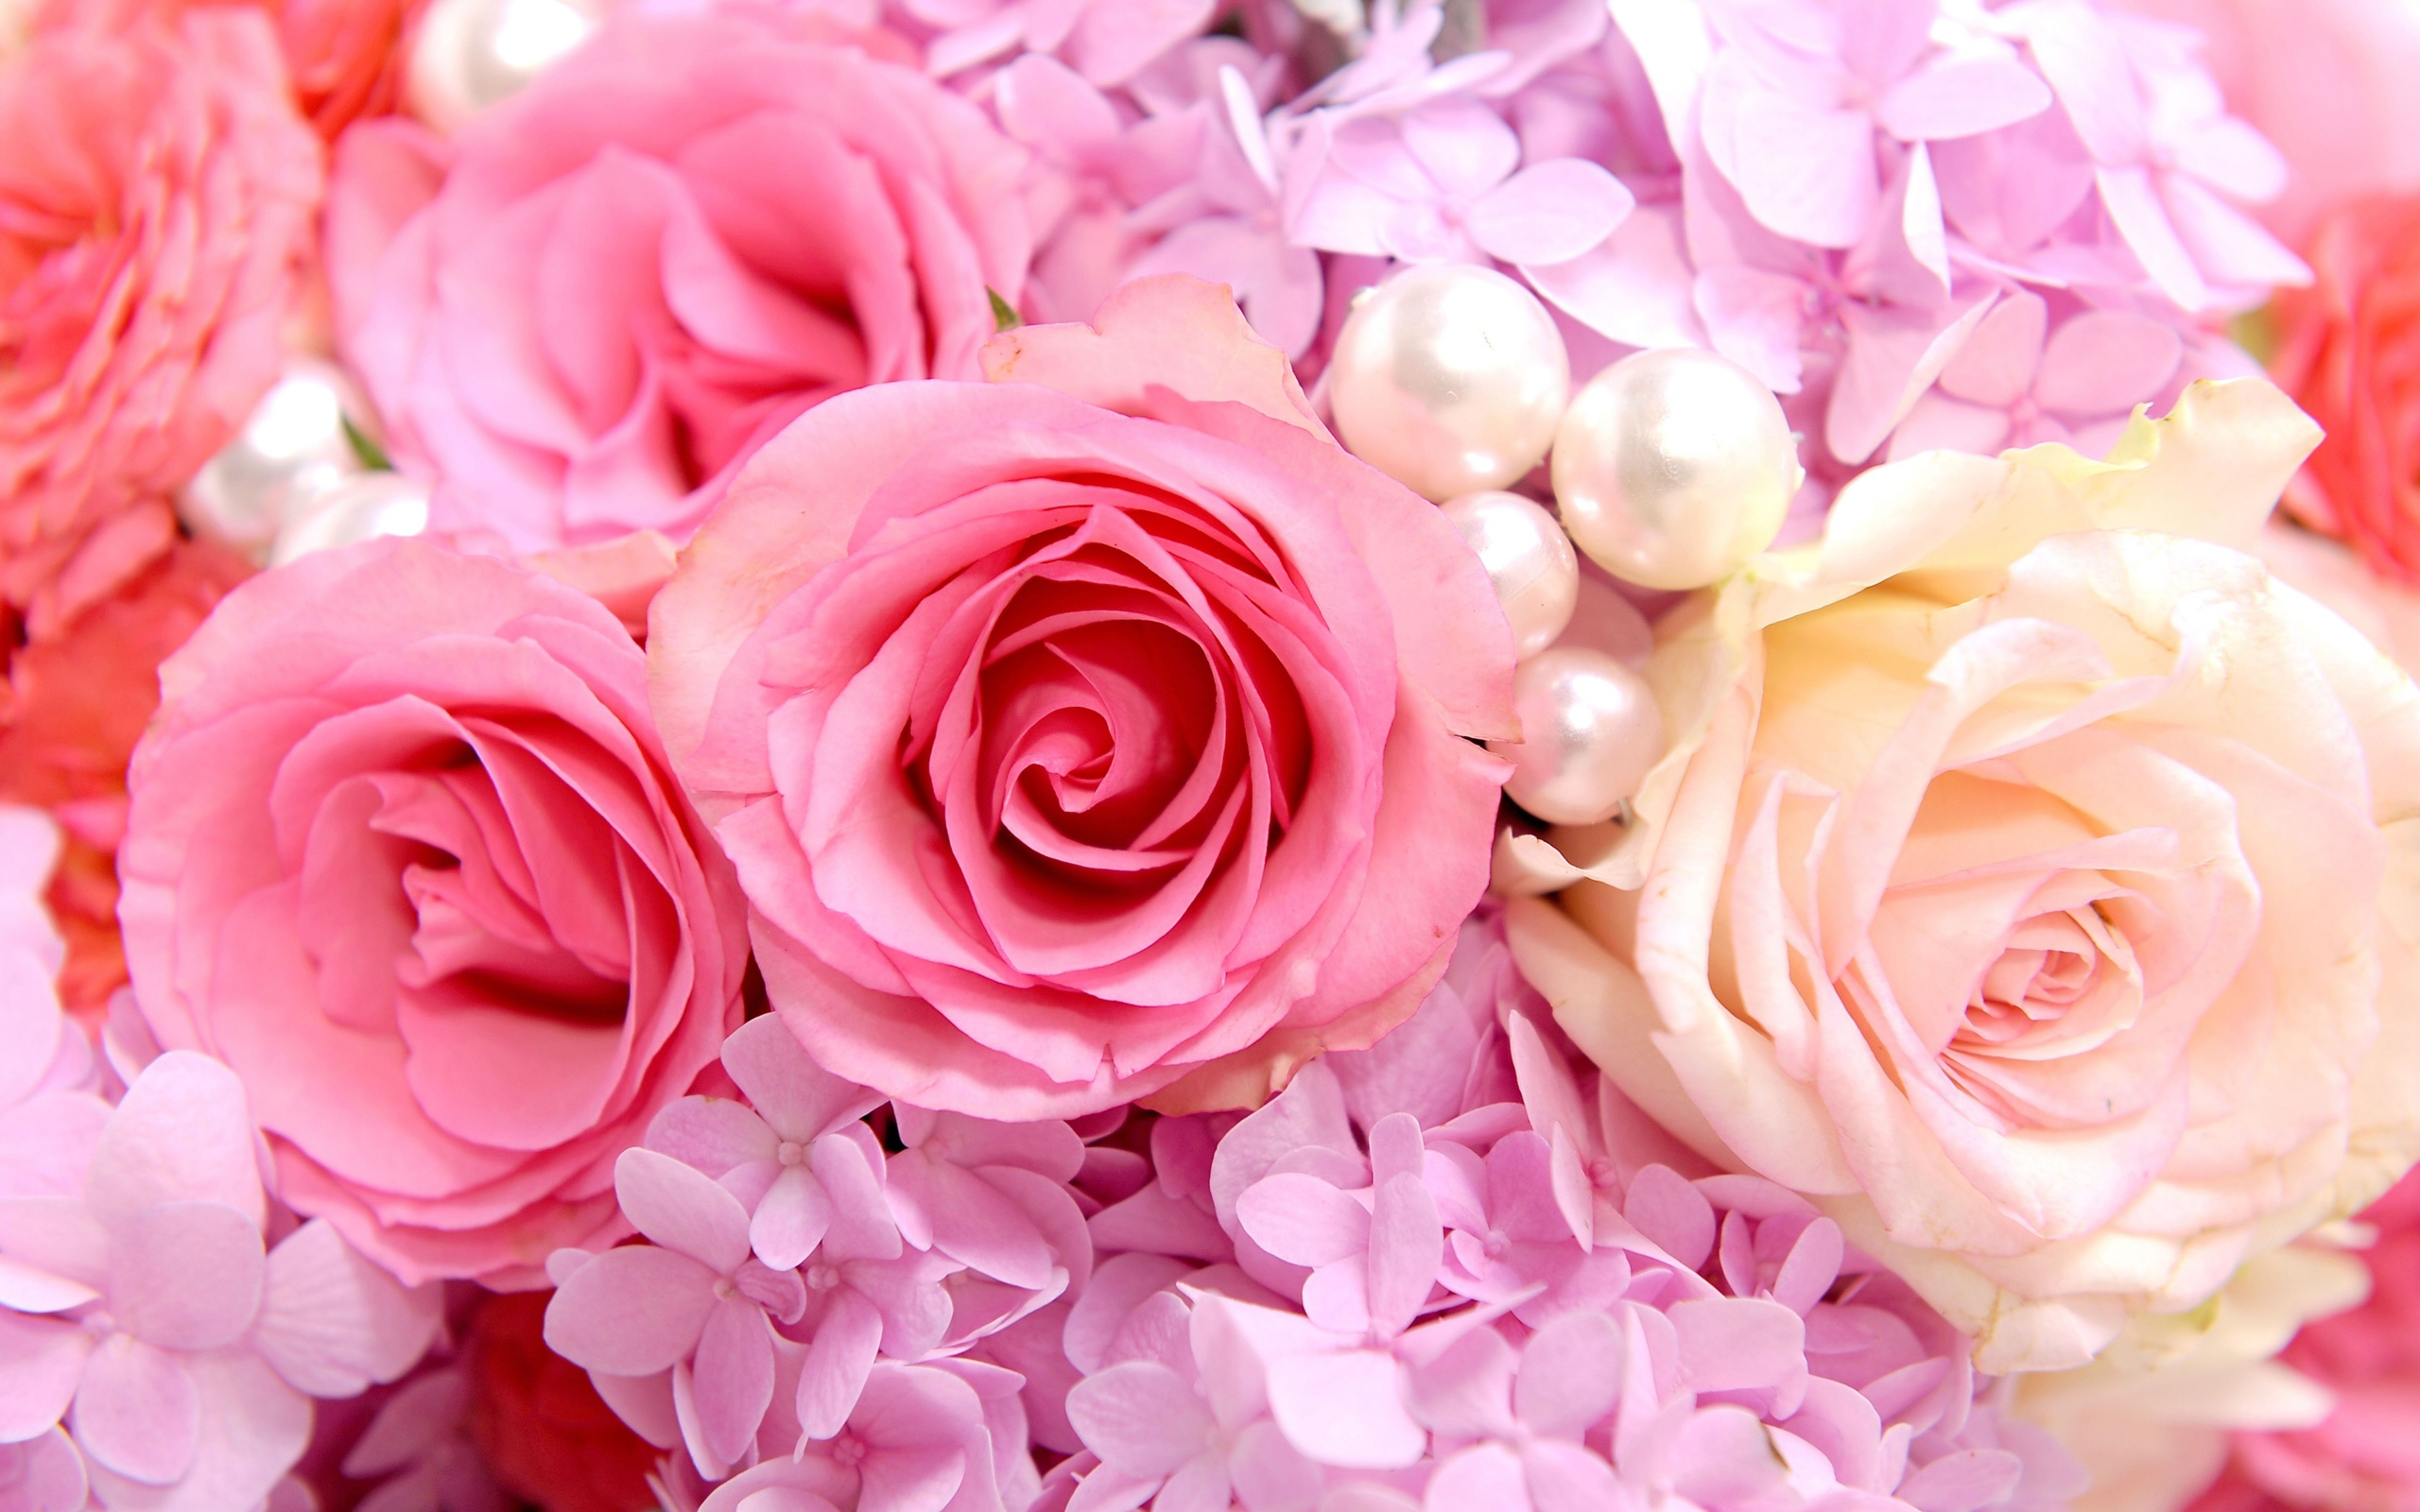 Download Hintergrundbilder 2560x1600 Rosa Rosen ... Pink Roses Wallpaper Tumblr